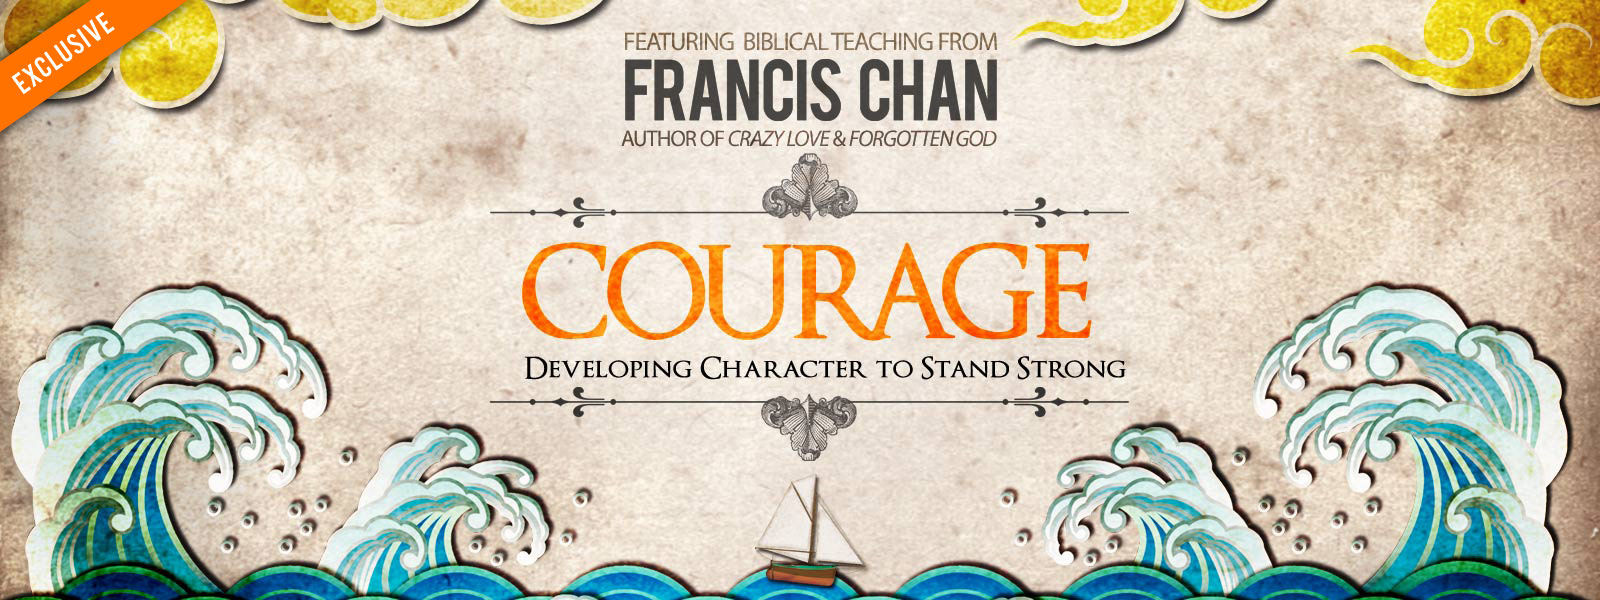 RightNow Media :: Streaming Video Bible Study : Courage ...